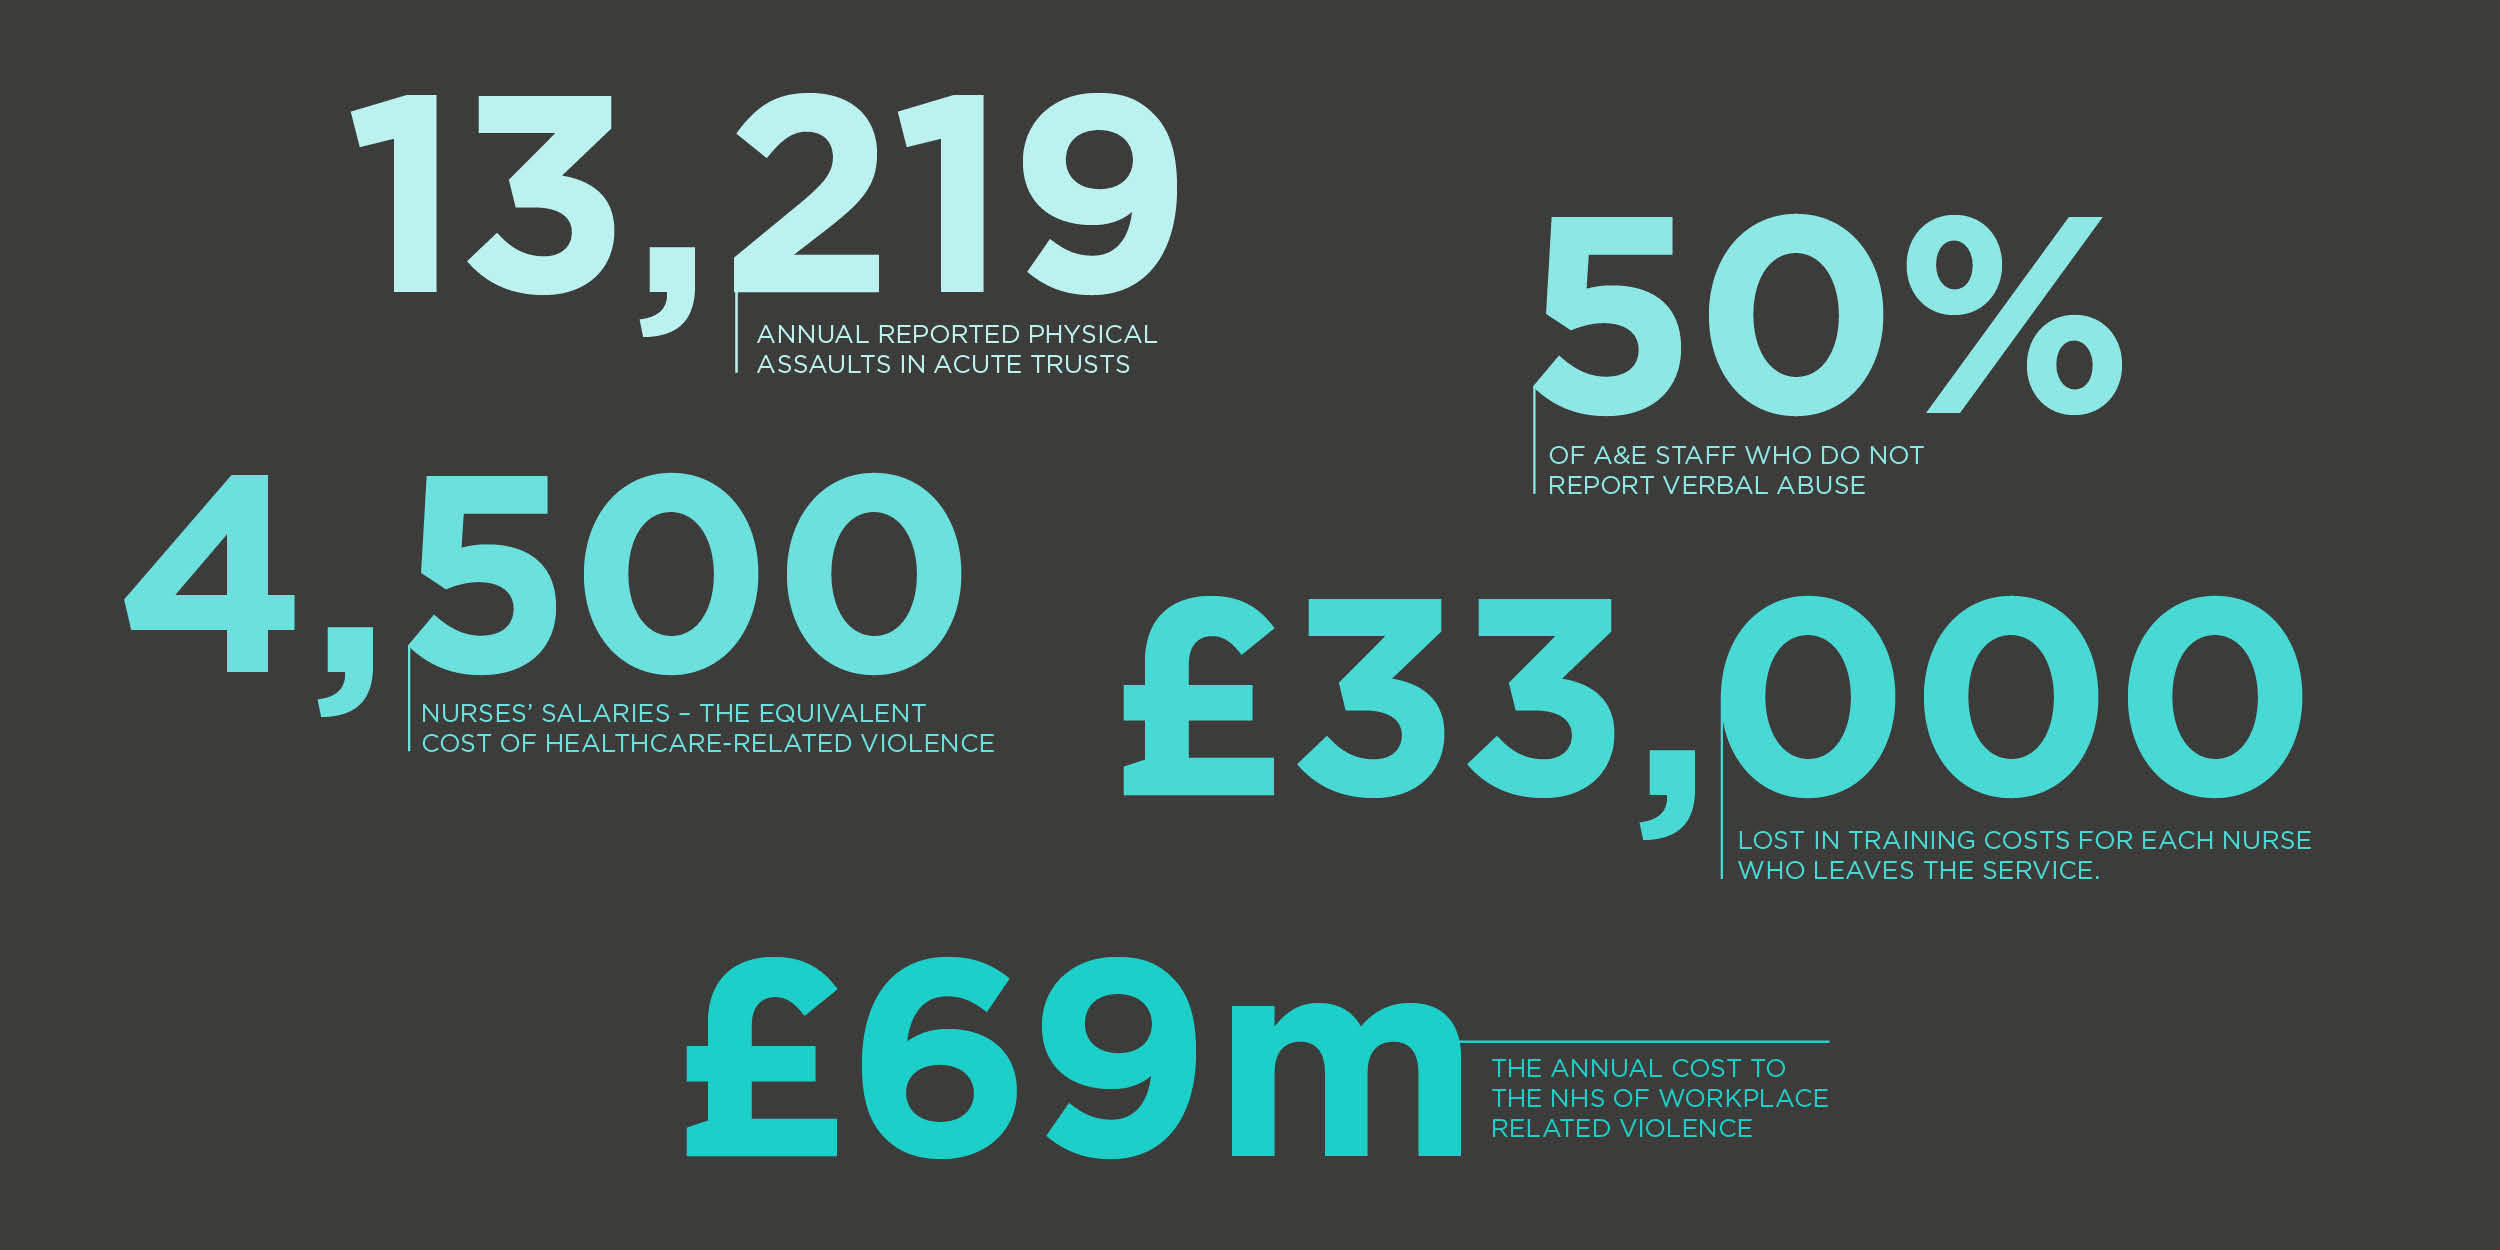 The cost of violence in the NHS